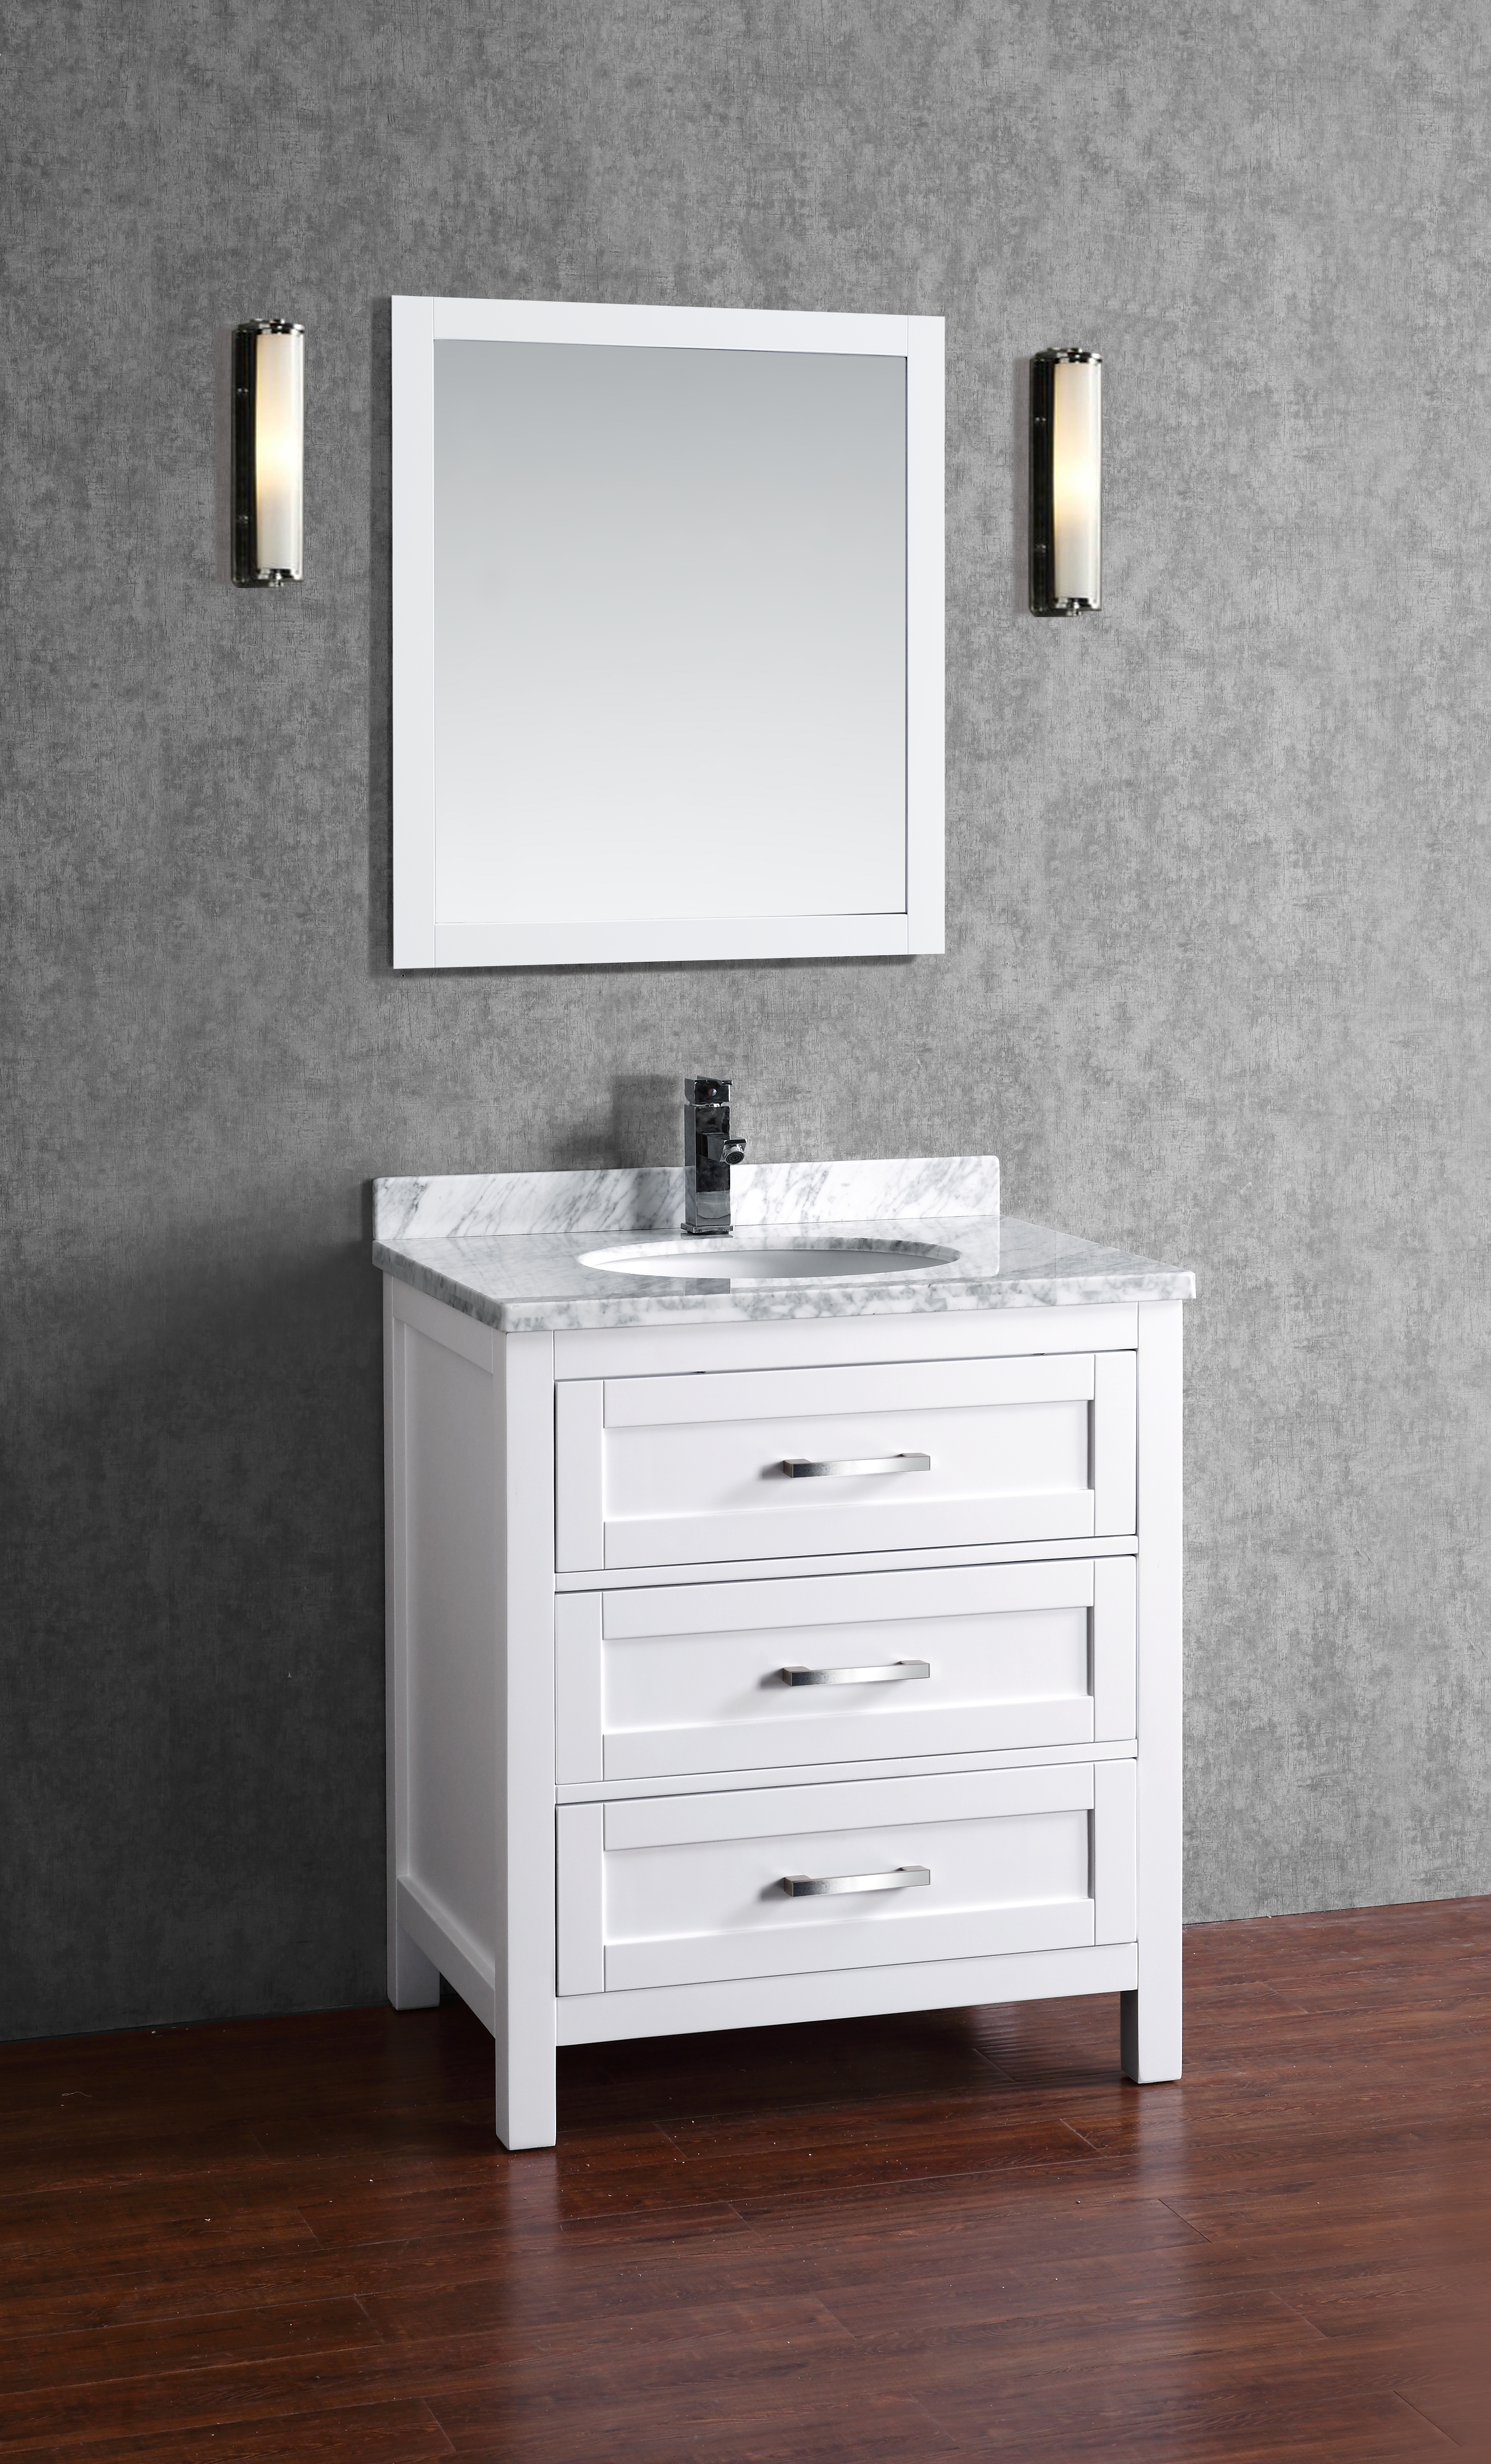 Toscana 30 Inch White Vanity  AK Trading Home Options